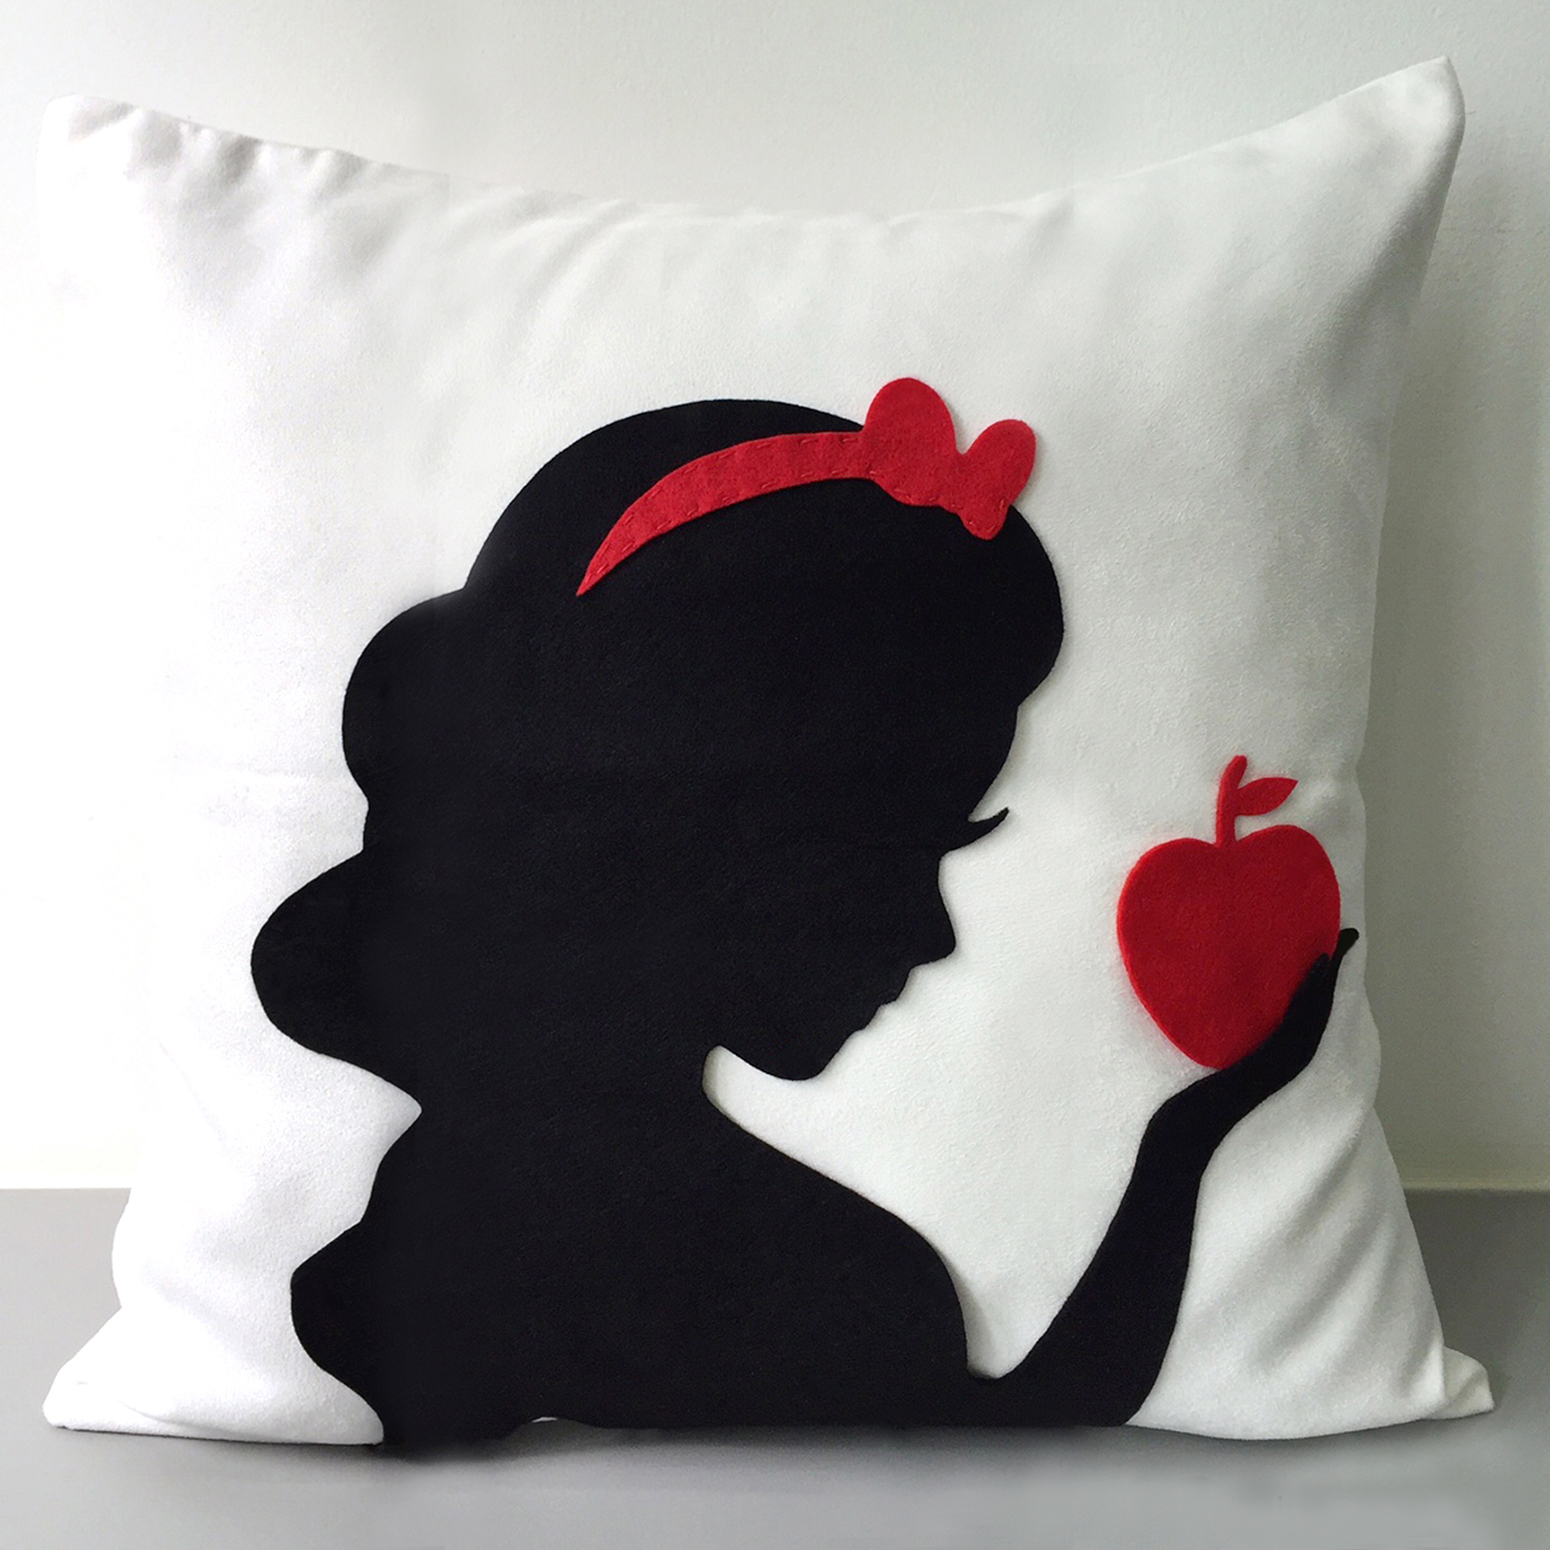 Snow White Decorative White And Black Pillow Cover.disney Princess 16inch Cushion Cover. Girls Room Decor